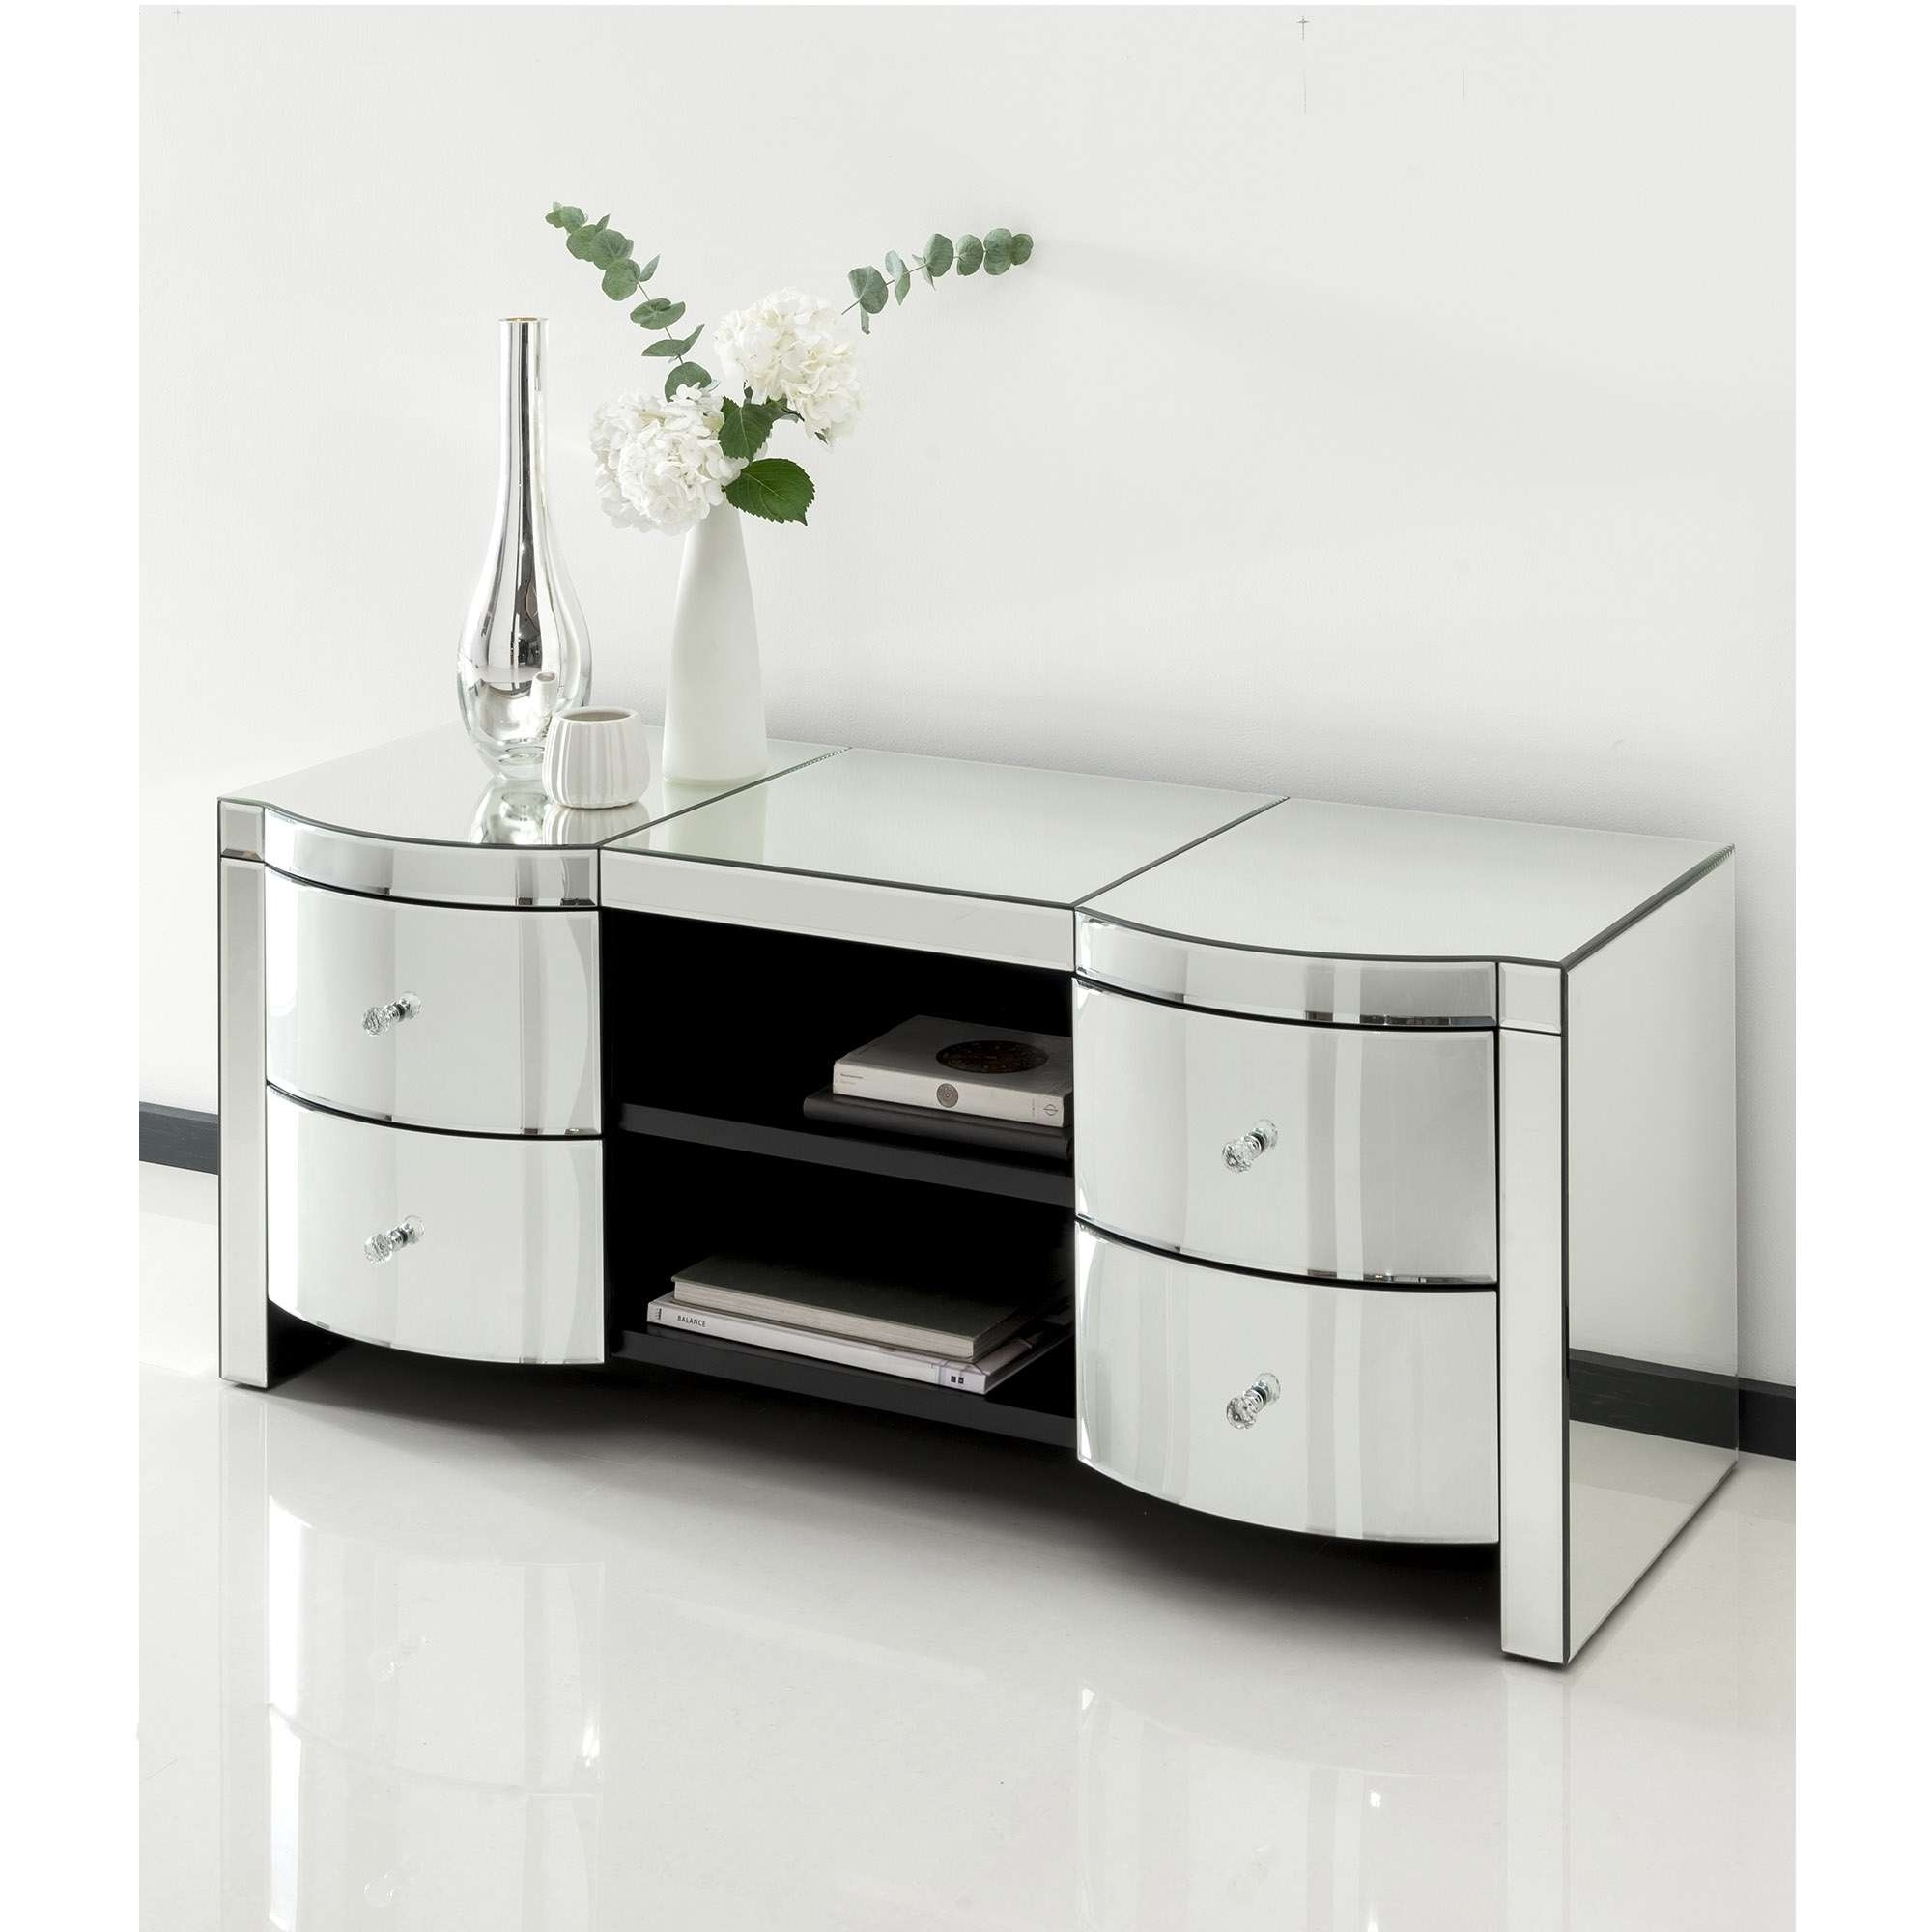 Romano Crystal Mirrored Tv Cabinet | Venetian Mirrored Furniture Regarding Mirror Tv Cabinets (View 15 of 20)